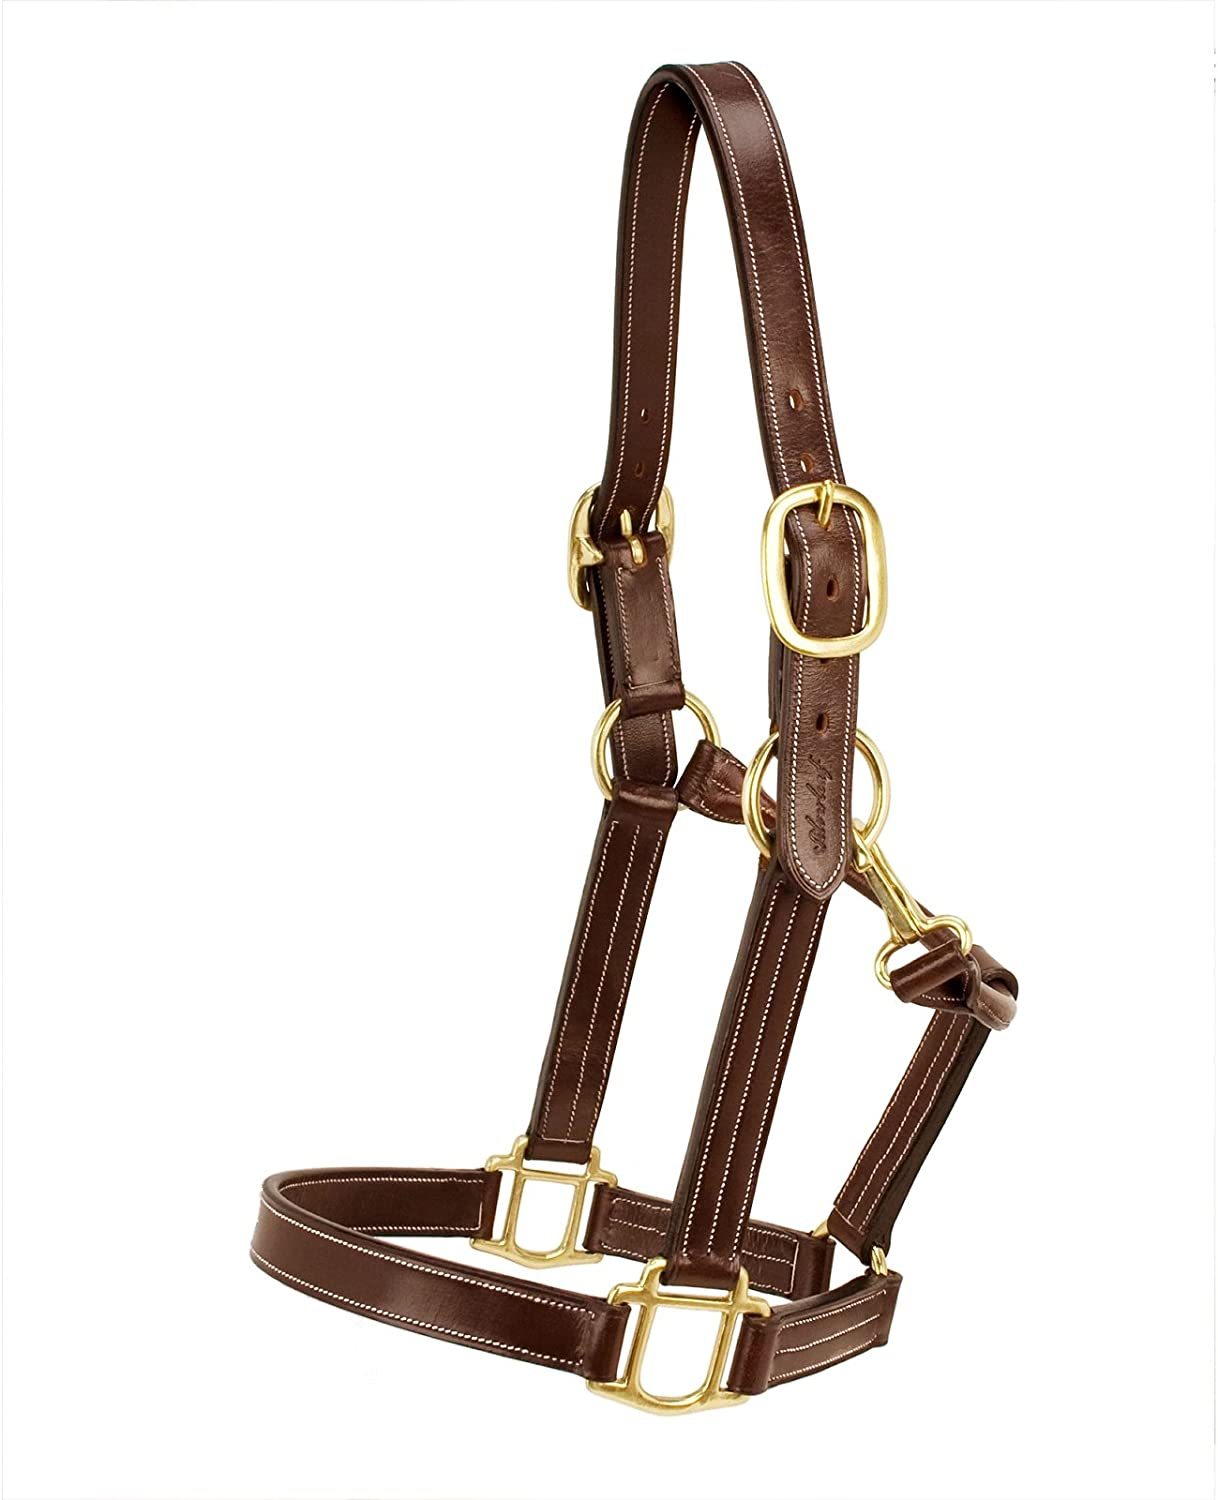 Silverleaf Plain Halter with Brass Fittings - Size:Oversize Color:Golden Oak